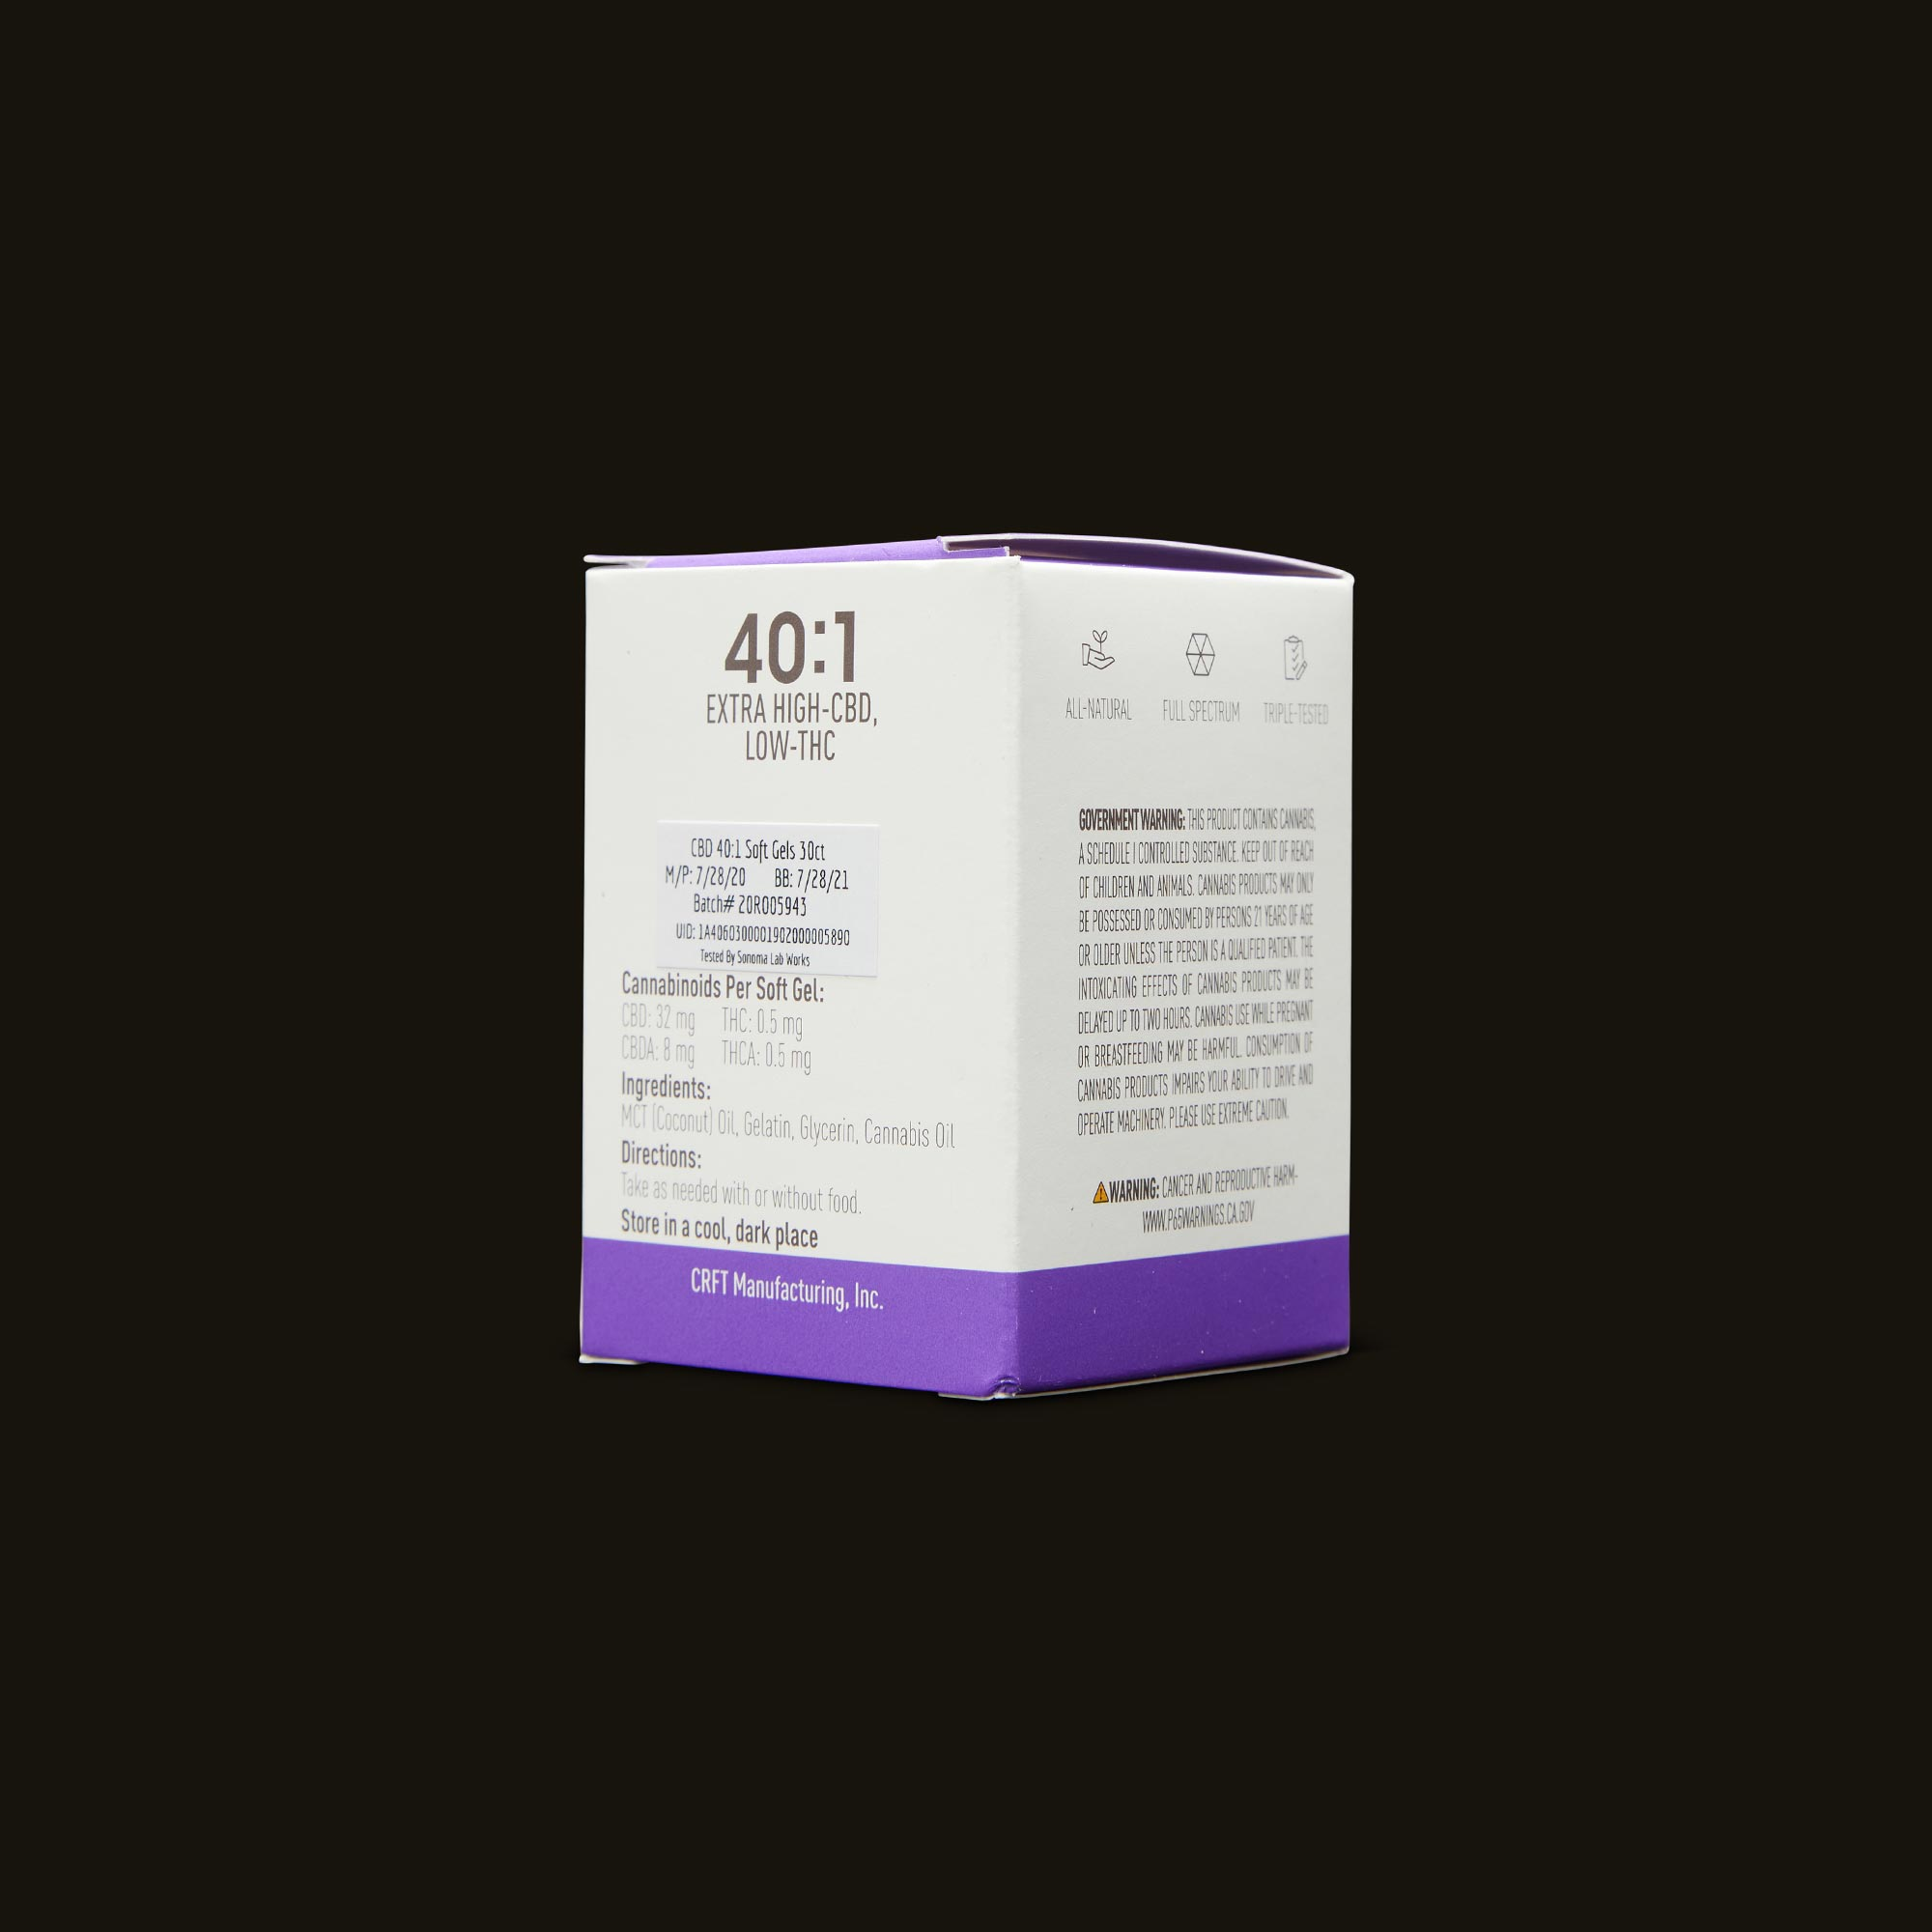 Care By Design 40:1 Soft Gels 30-Pack Ingredients